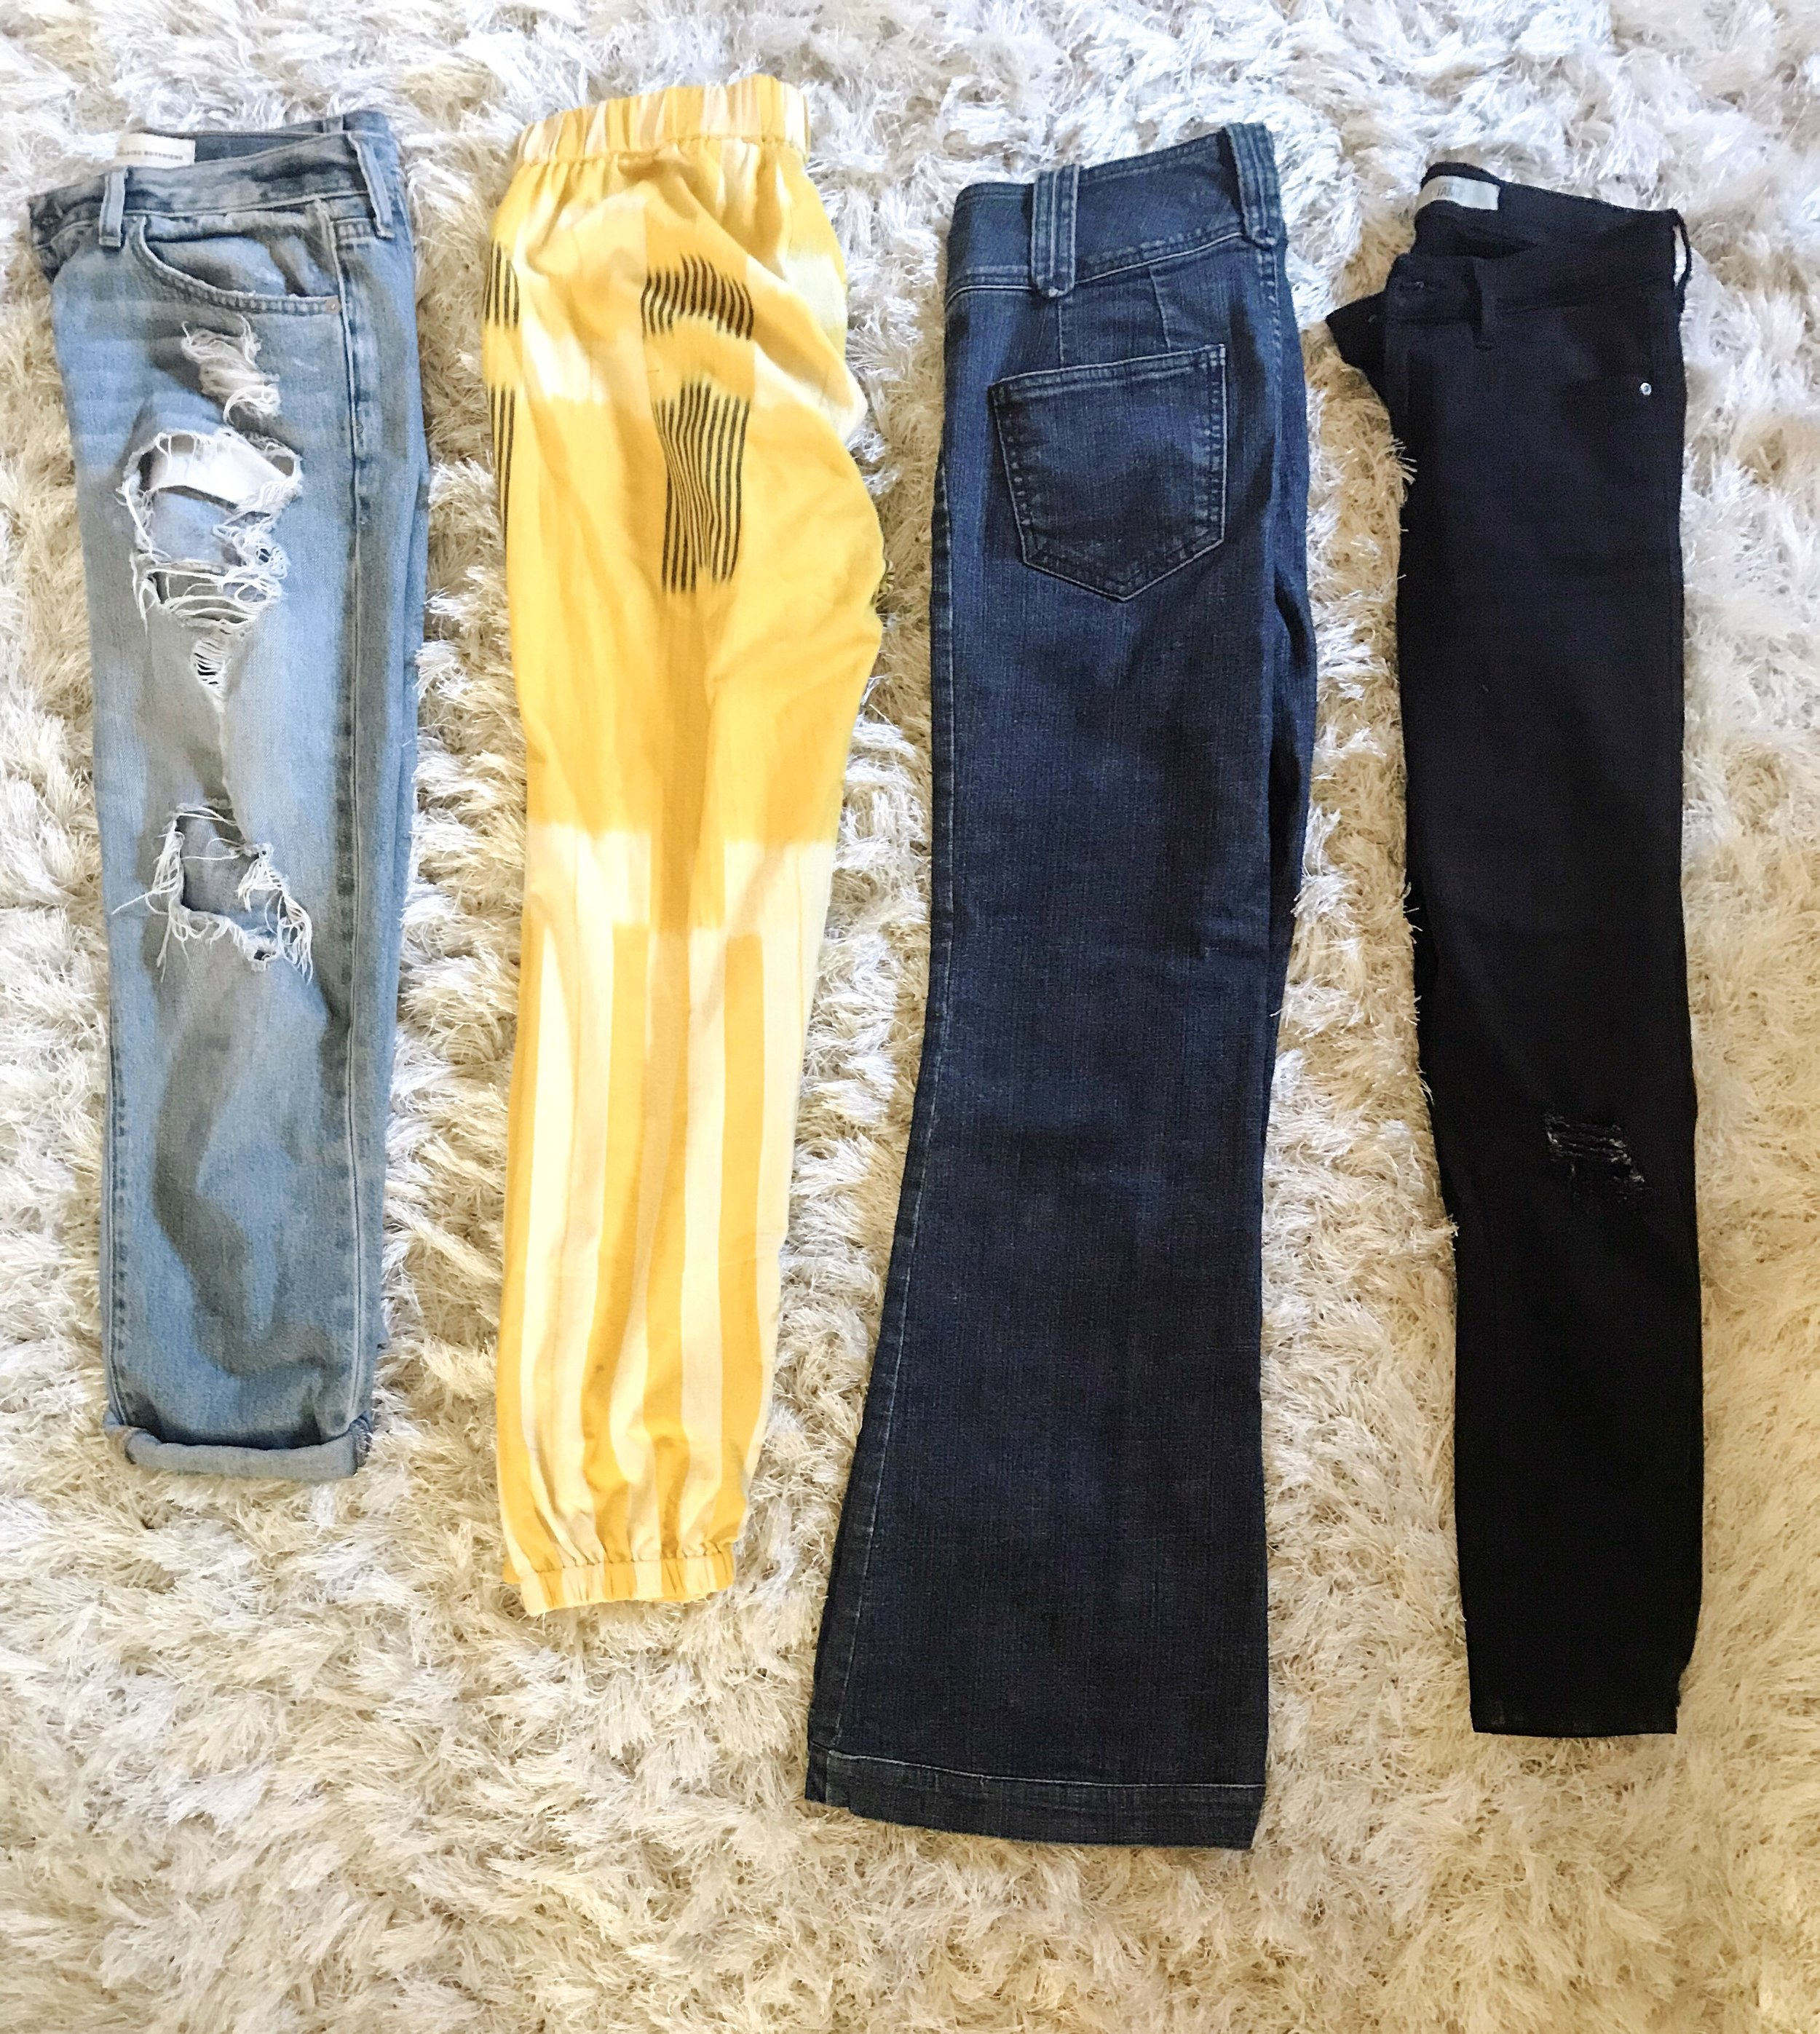 Ripped Boyfriend Jeans: Gap from ages ago, Yellow pants:  Matter Prints , Bell Bottoms: Furst Premium Denim from over 10 years ago, Black jeans: Second-hand Top Shop